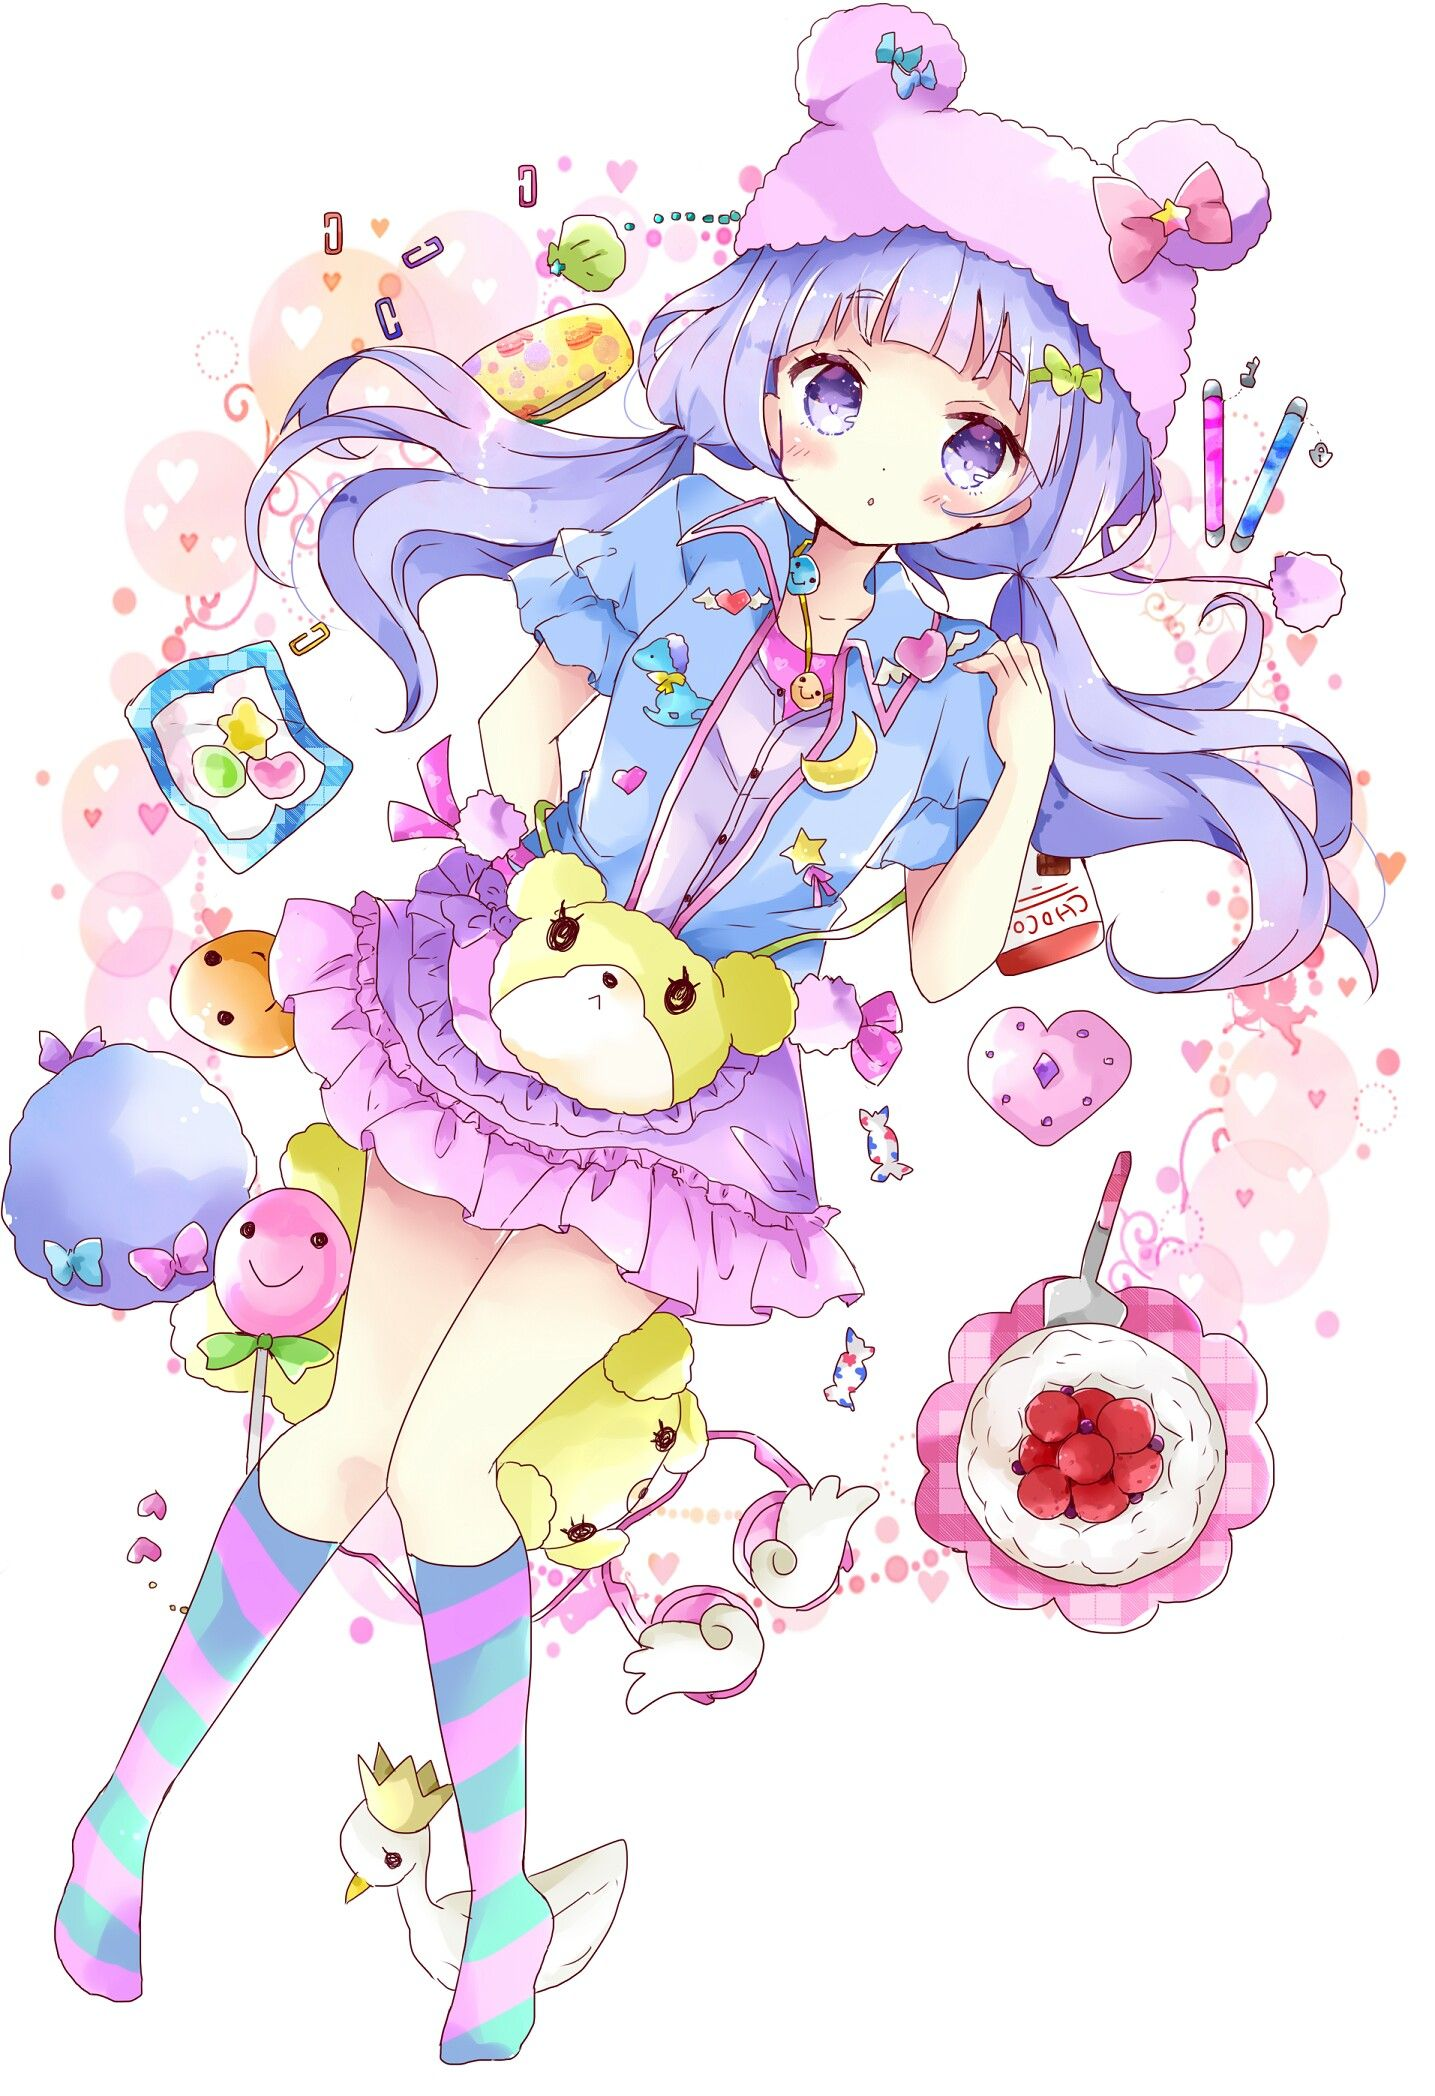 Quien quiere una loli anime manga girls pinterest kawaii quien quiere una loli anime manga girls pinterest kawaii anime kawaii y chicos de anime thecheapjerseys Image collections